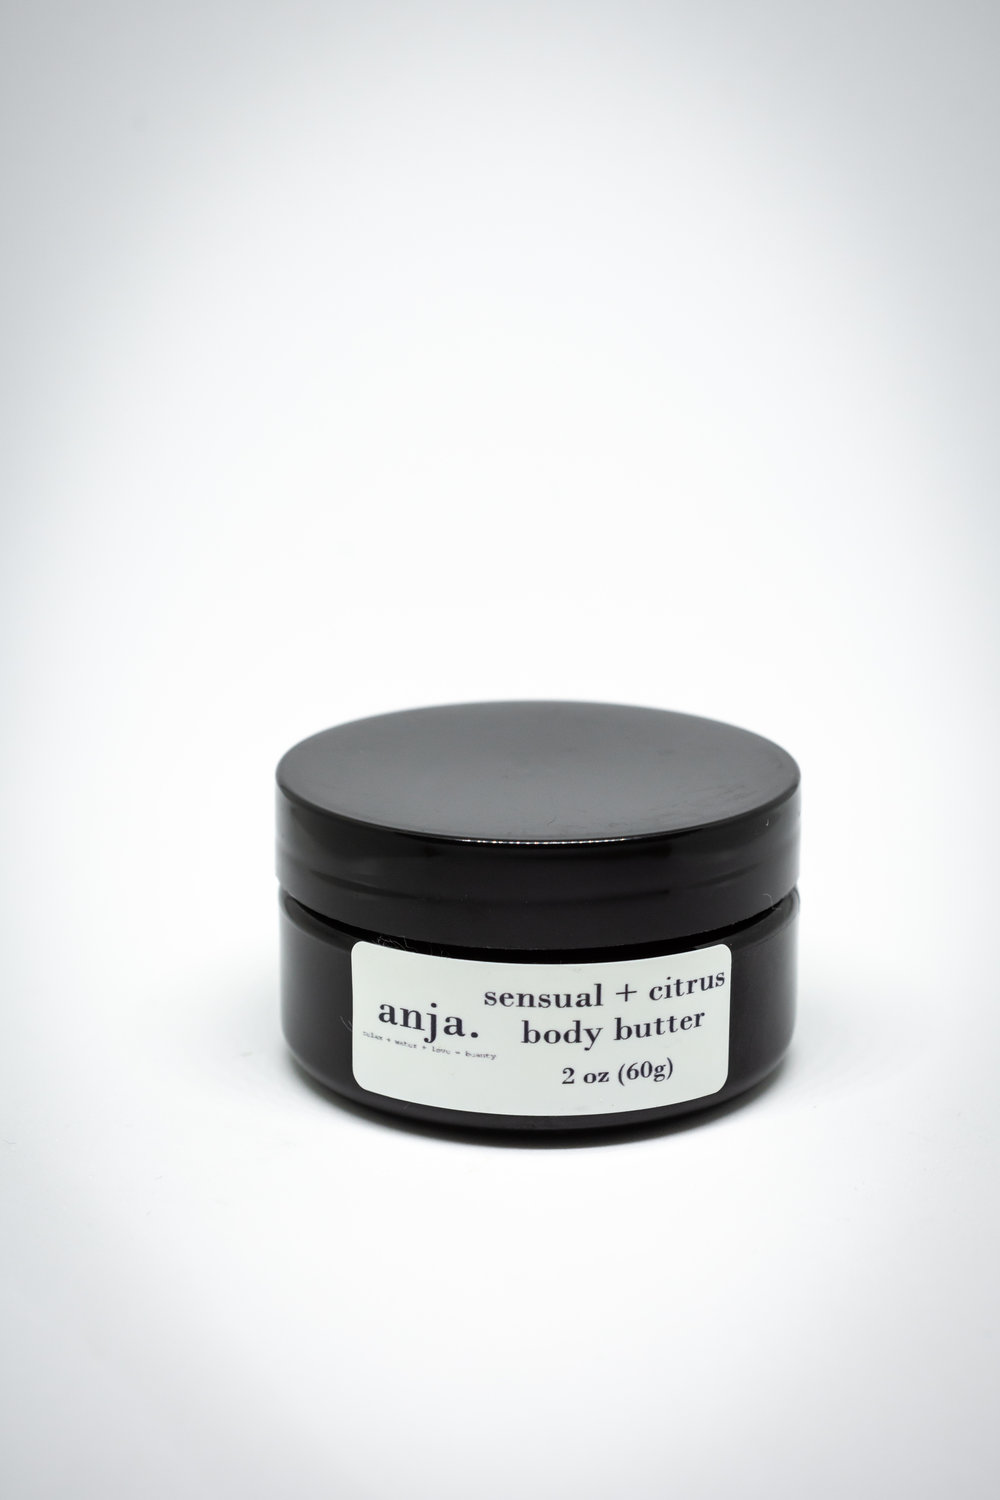 sensual + citrus body butter $10